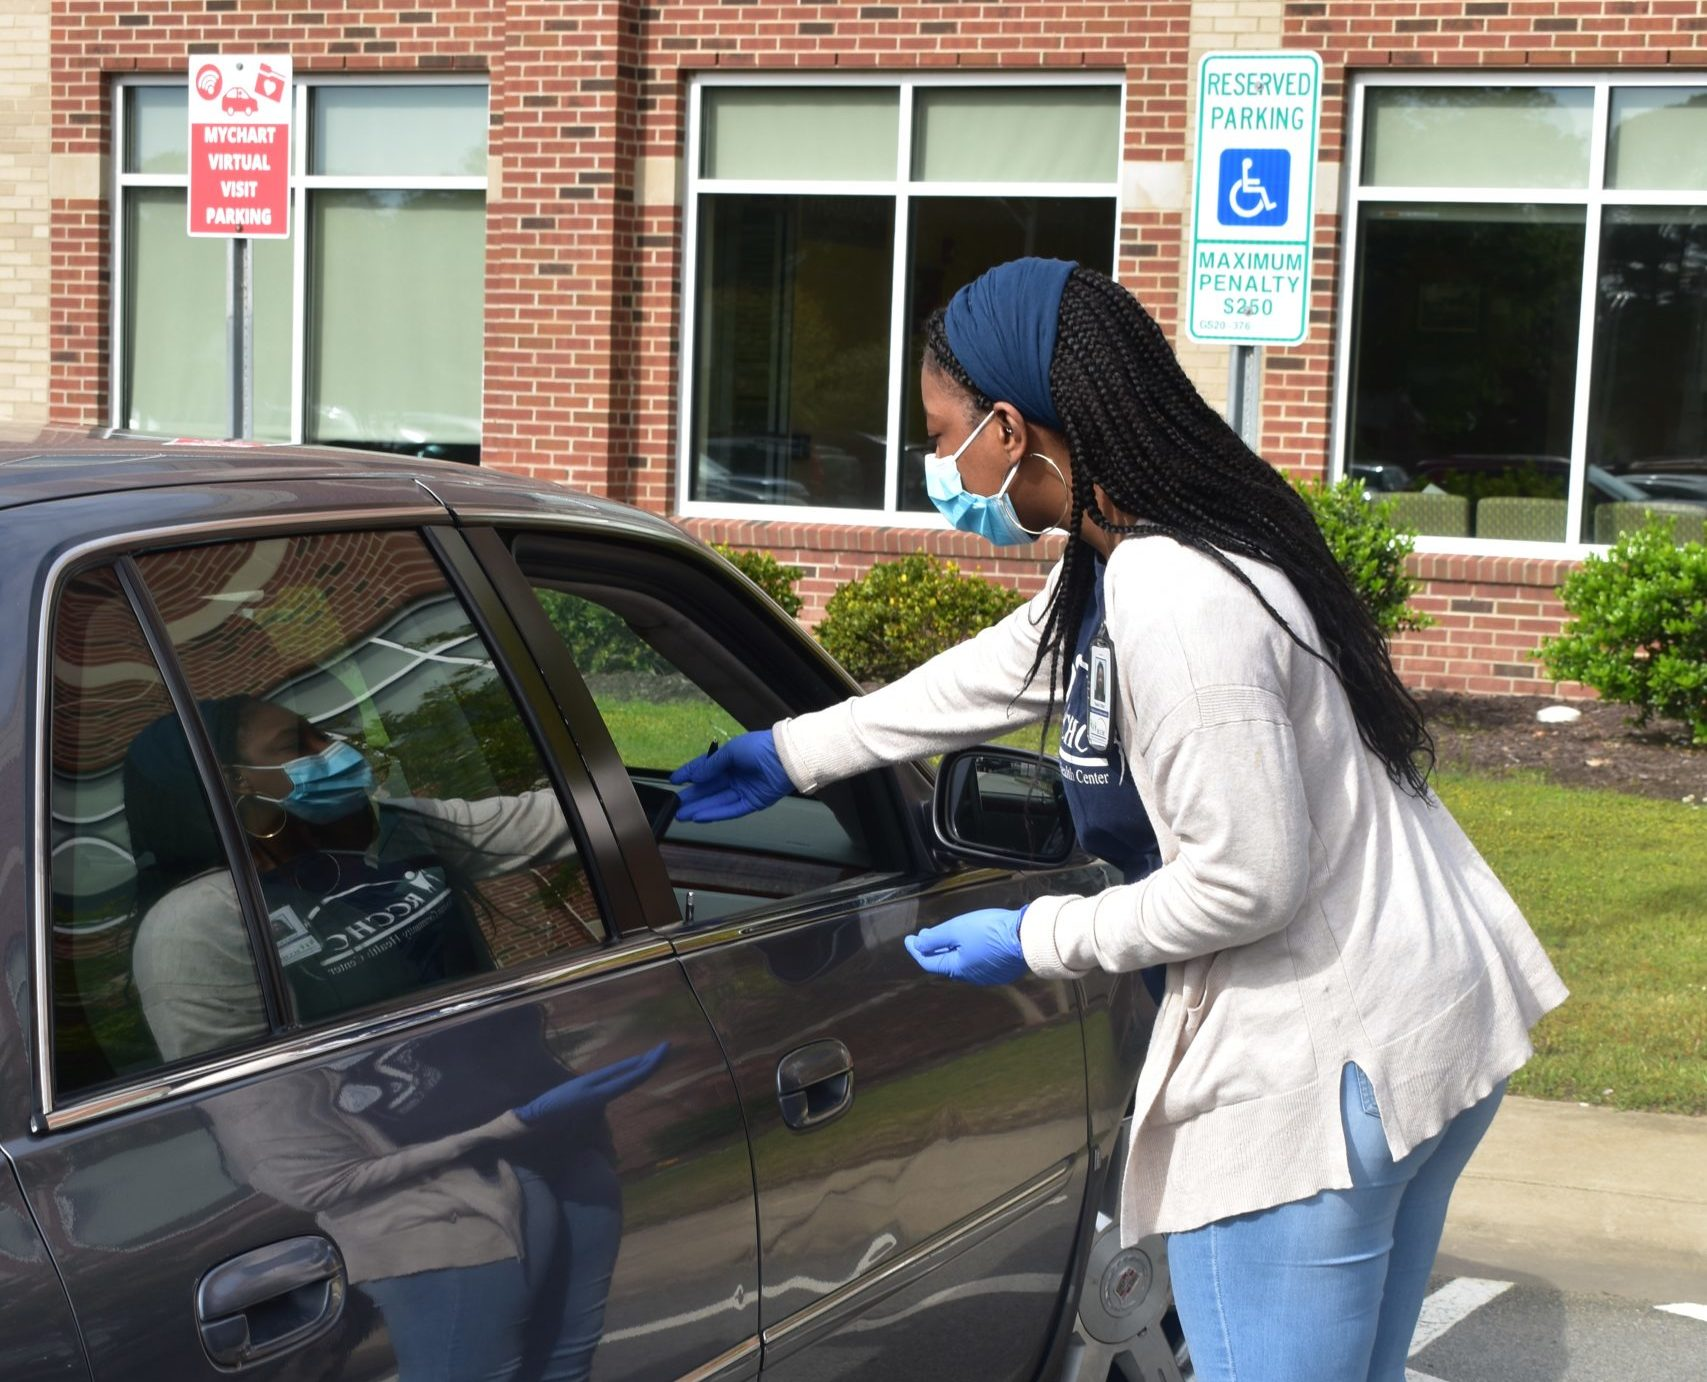 """In addition to referring its patients to needed social services through the new NCCARE360 portal, Roanoke Chowan Community Health Center is holding """"virtual visits"""" in its parking lot so patients can engage in social distancing. Here, staff member Nesita Britt delivers a mobile device so a patient can speak with a provider."""